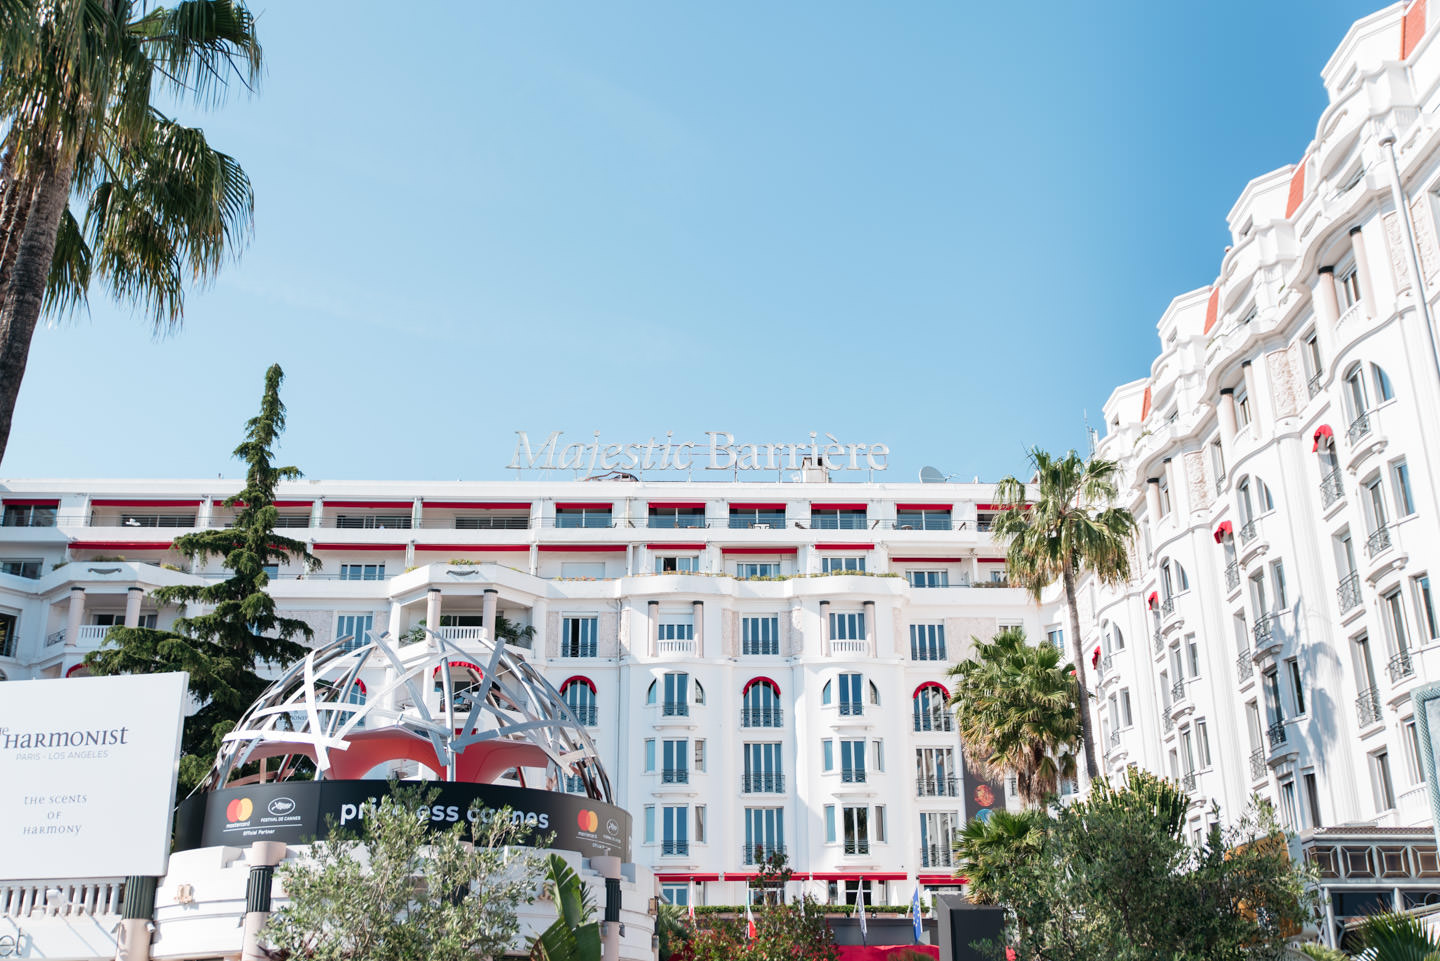 Blog-Mode-And-The-City-Lifestyle-cannes-Mastercard